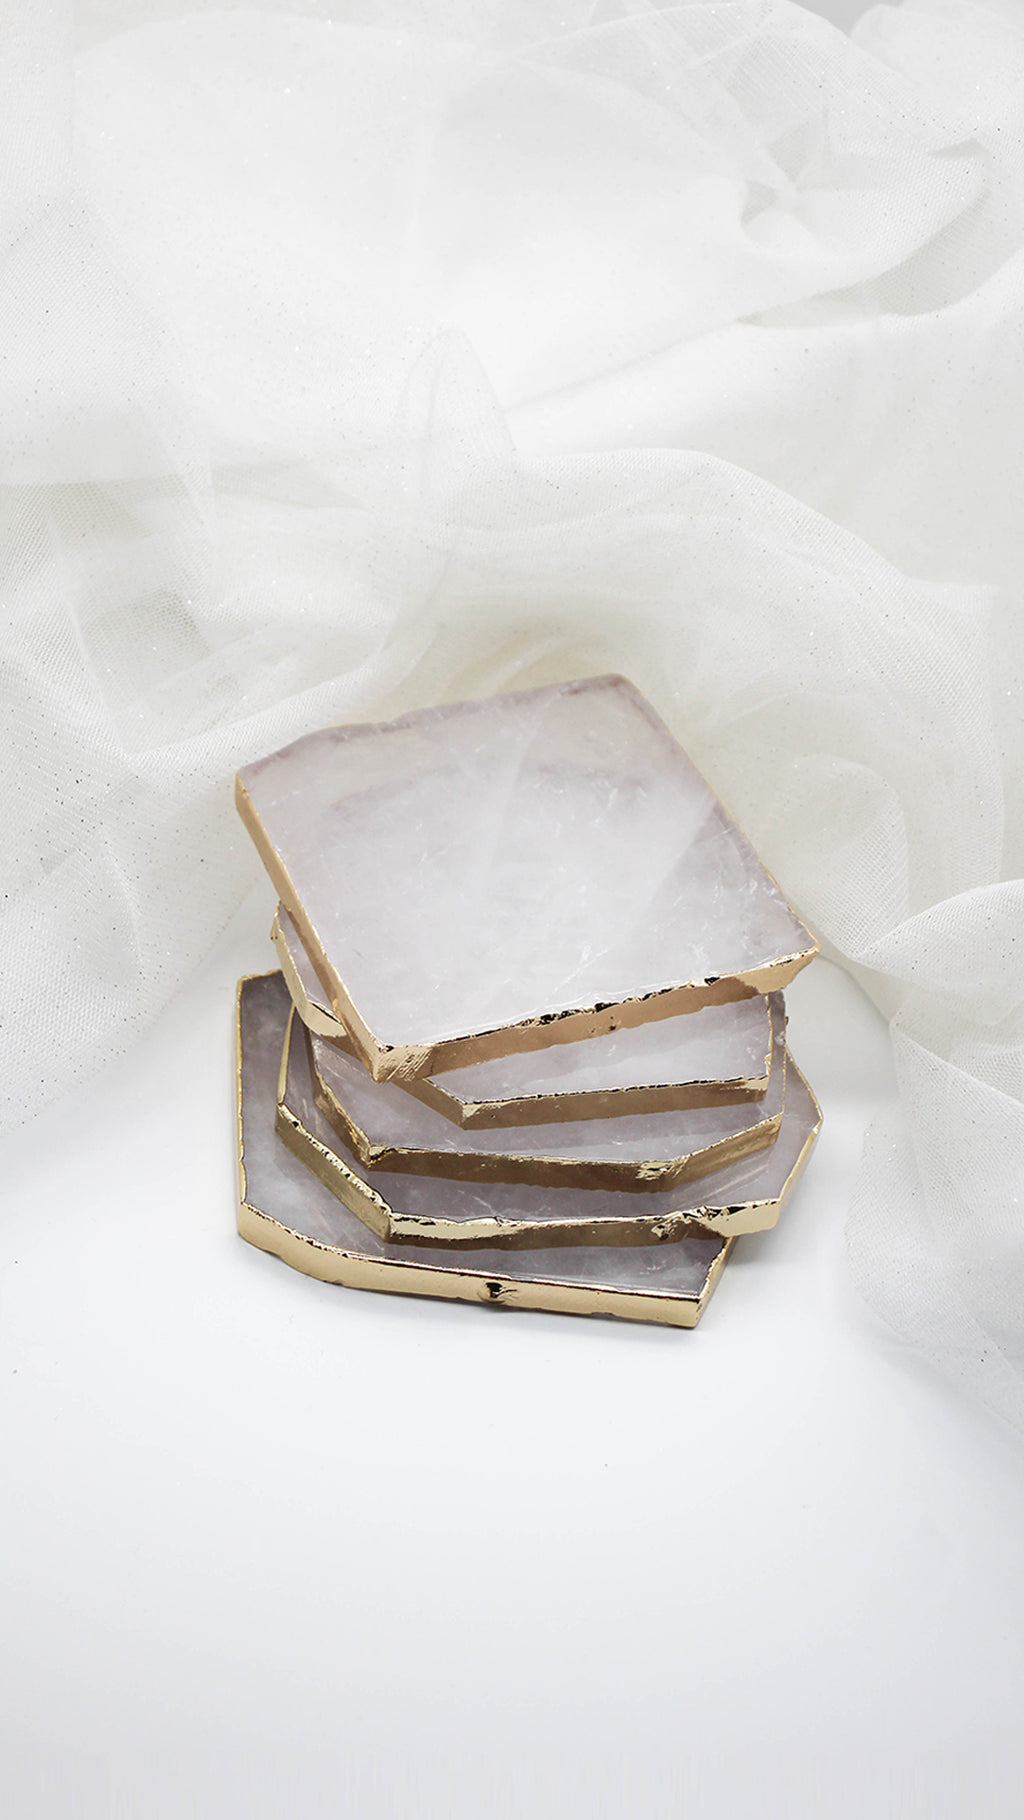 Clear Quartz - Jewelry Coaster (Single Coaster) - In stock